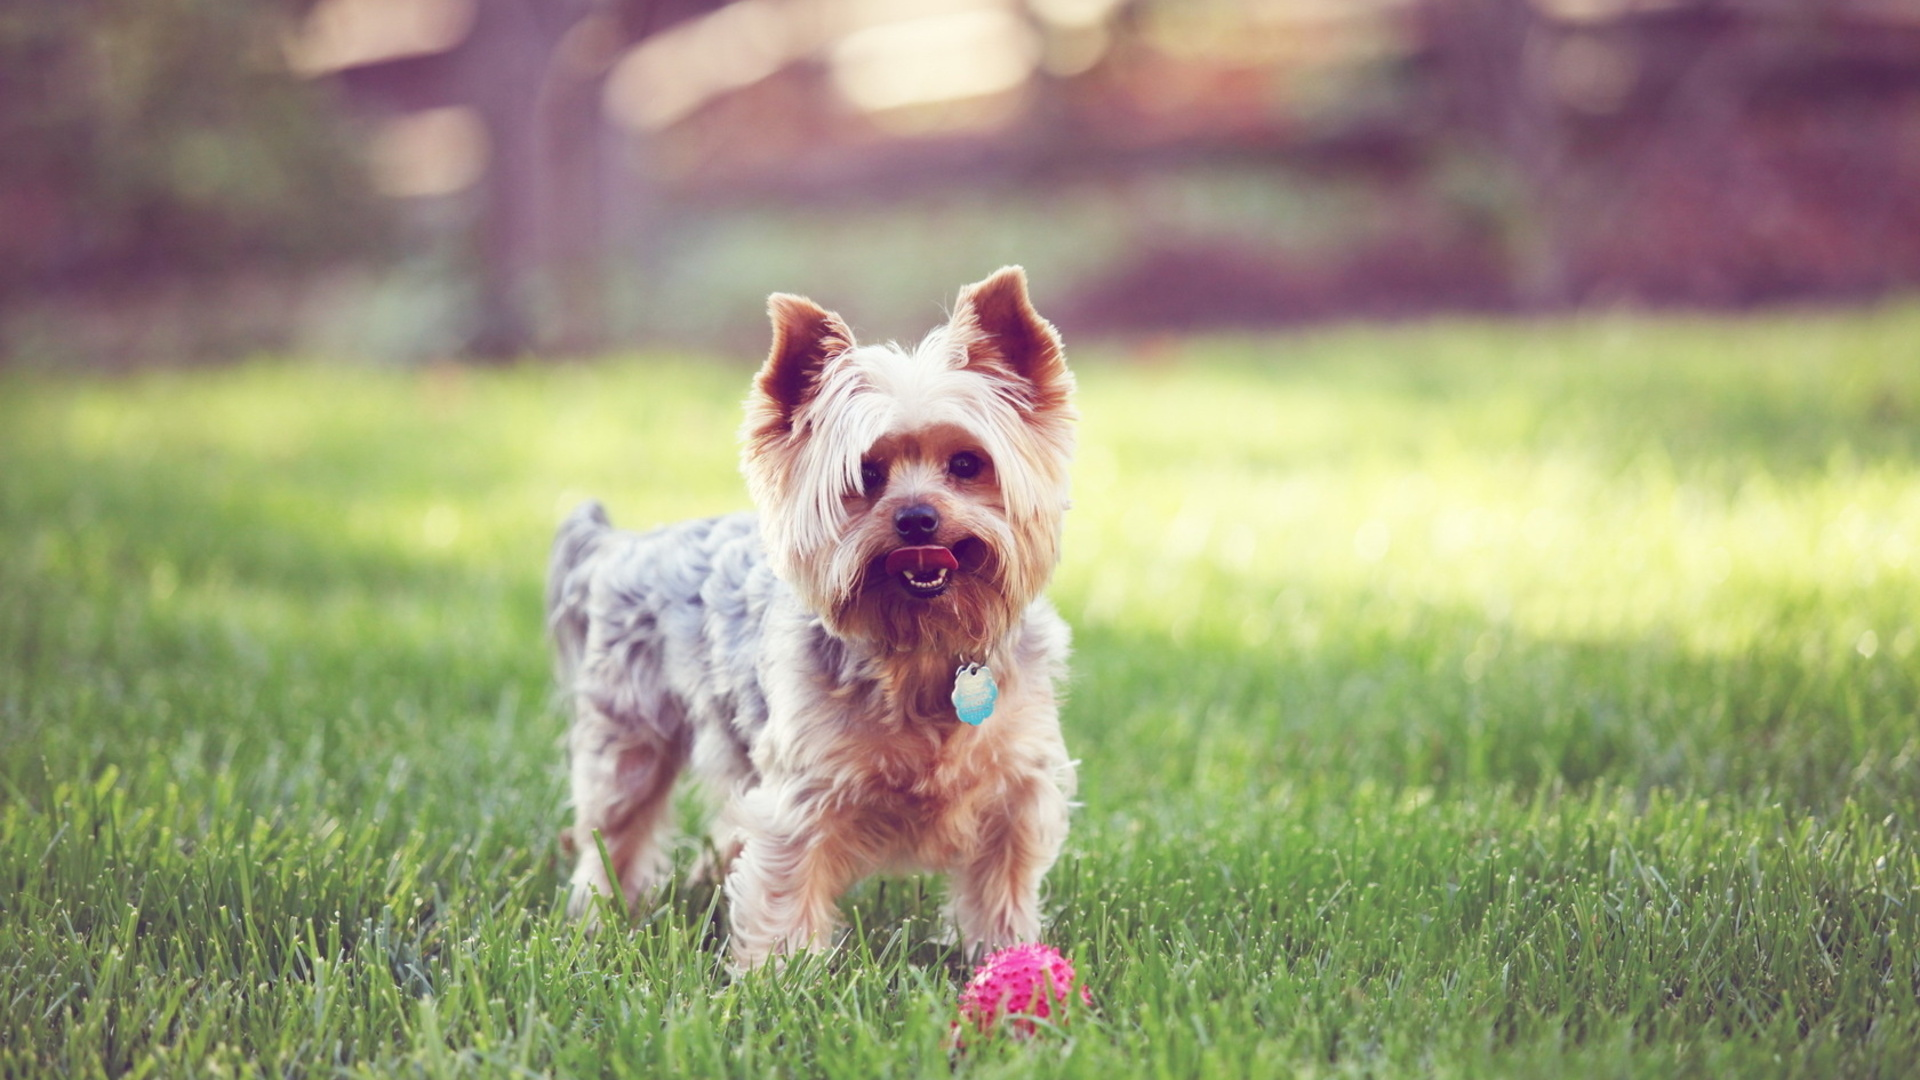 15655 download wallpaper Animals, Dogs screensavers and pictures for free